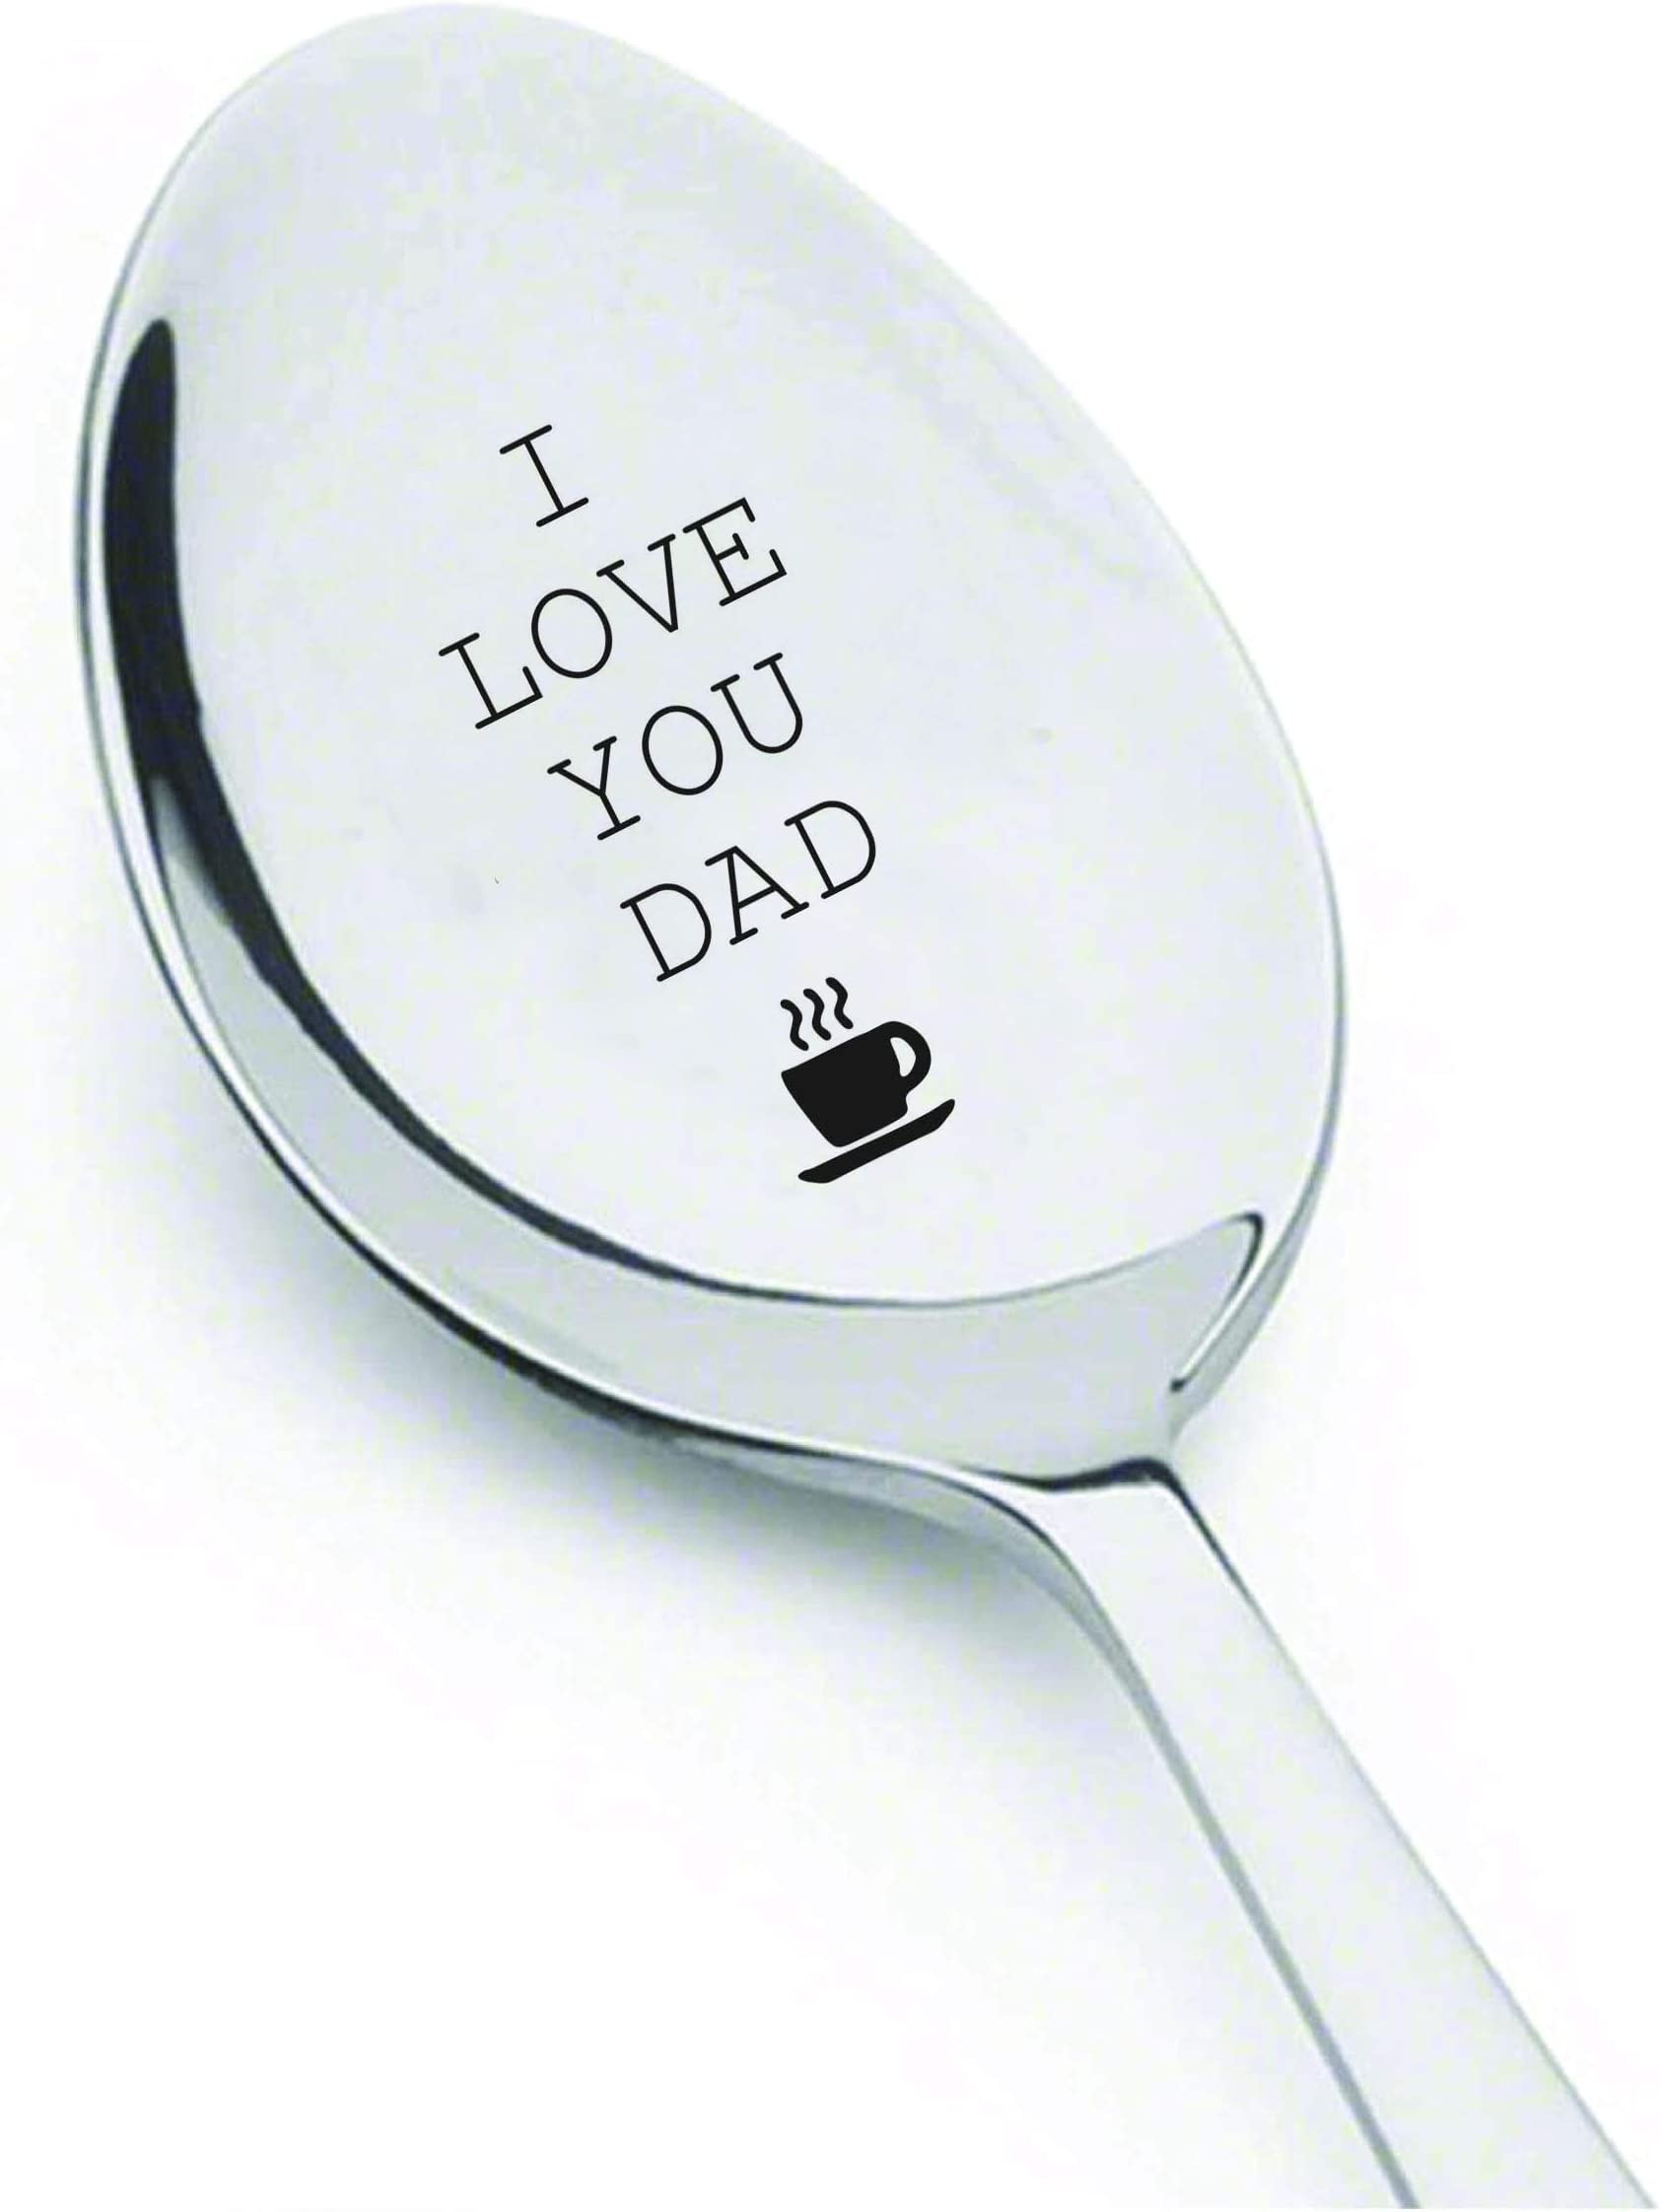 Fathers Day Gift Dad/'s Ice Cream Spoon Gift for Dad Ice Cream Lover Engraved Silverware Gift for Father Ice Cream Spoon